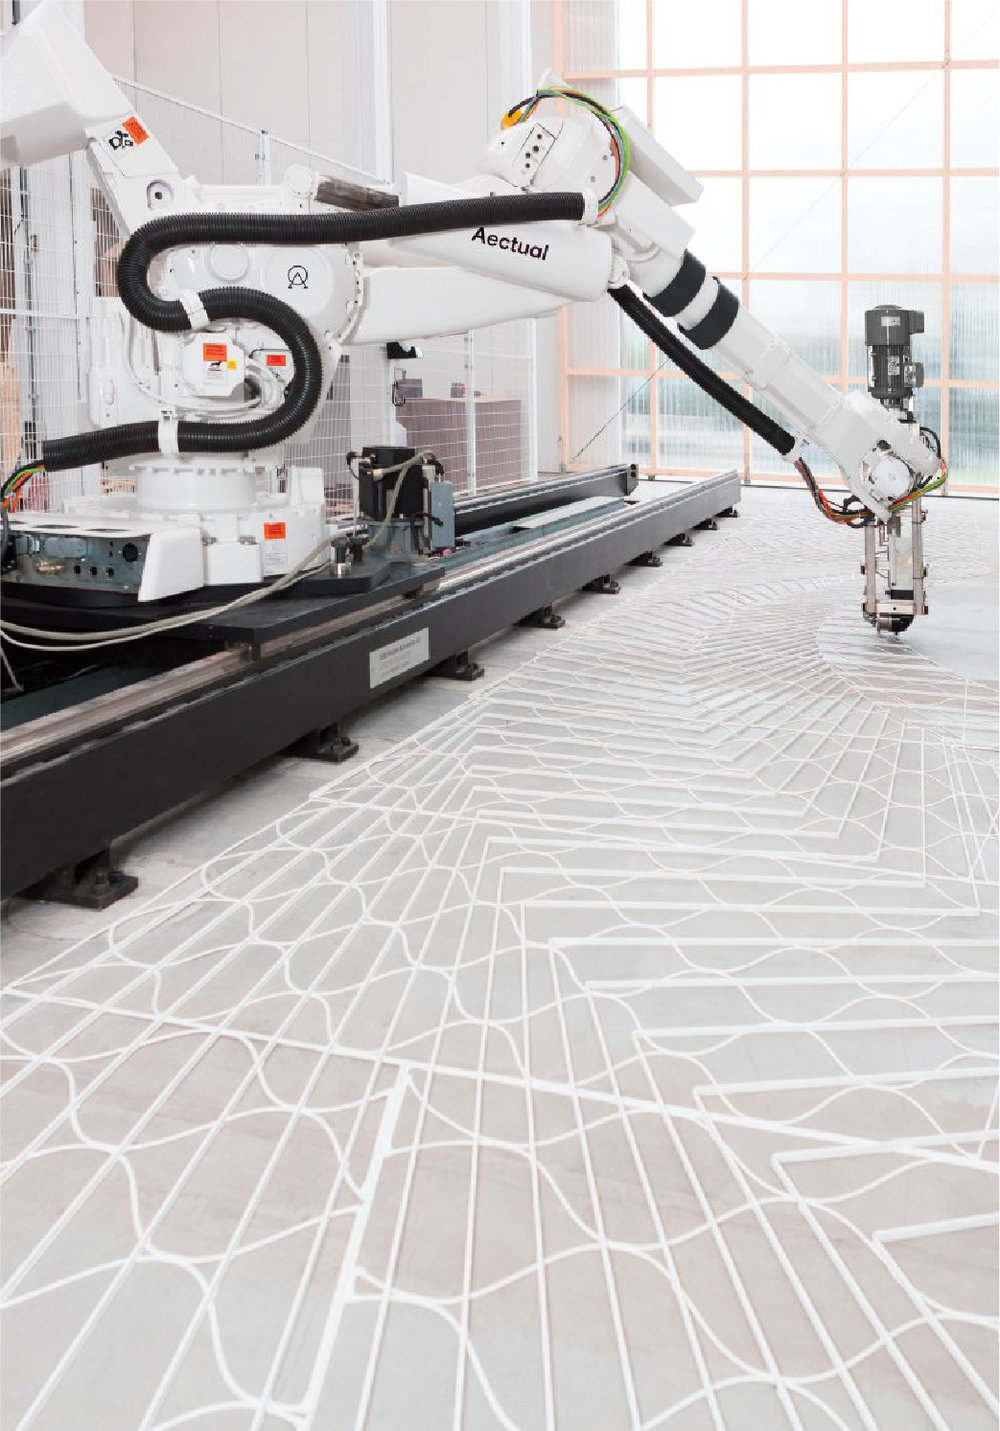 3D printed flooring system with terrazzo infill, providing total customisation